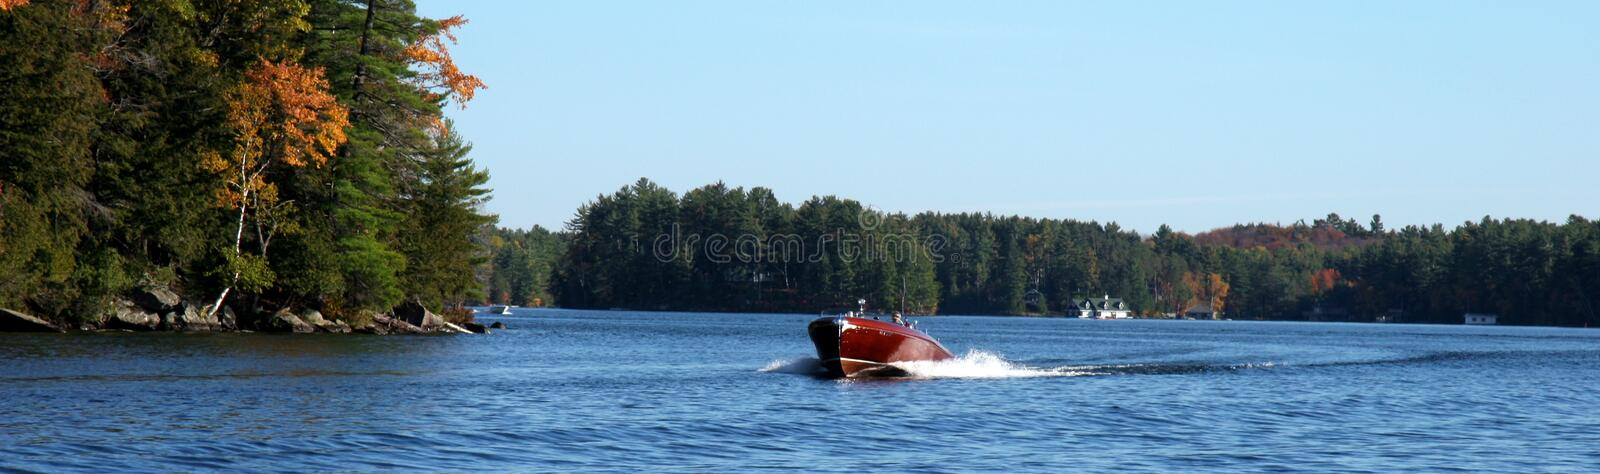 Wooden boat on a lake stock photo